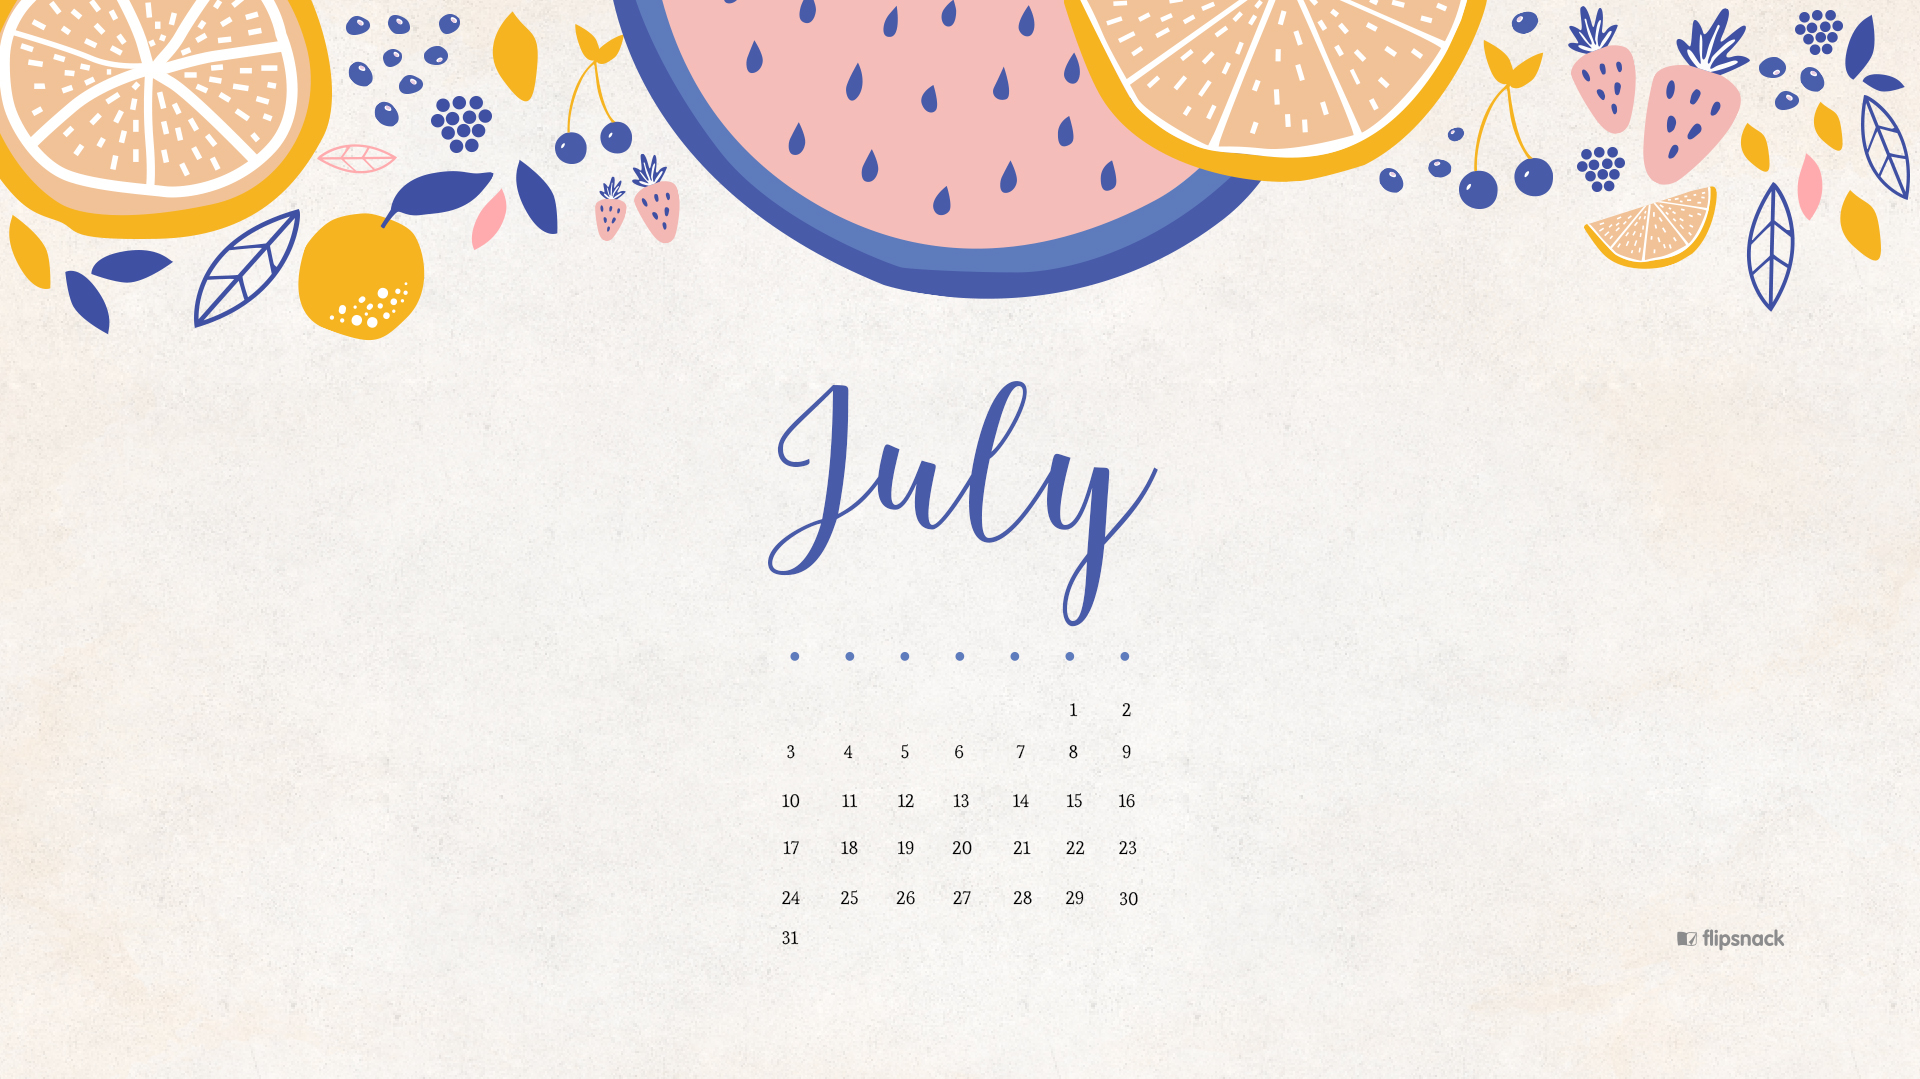 Calendar Background For Desktop : July free calendar wallpaper desktop background